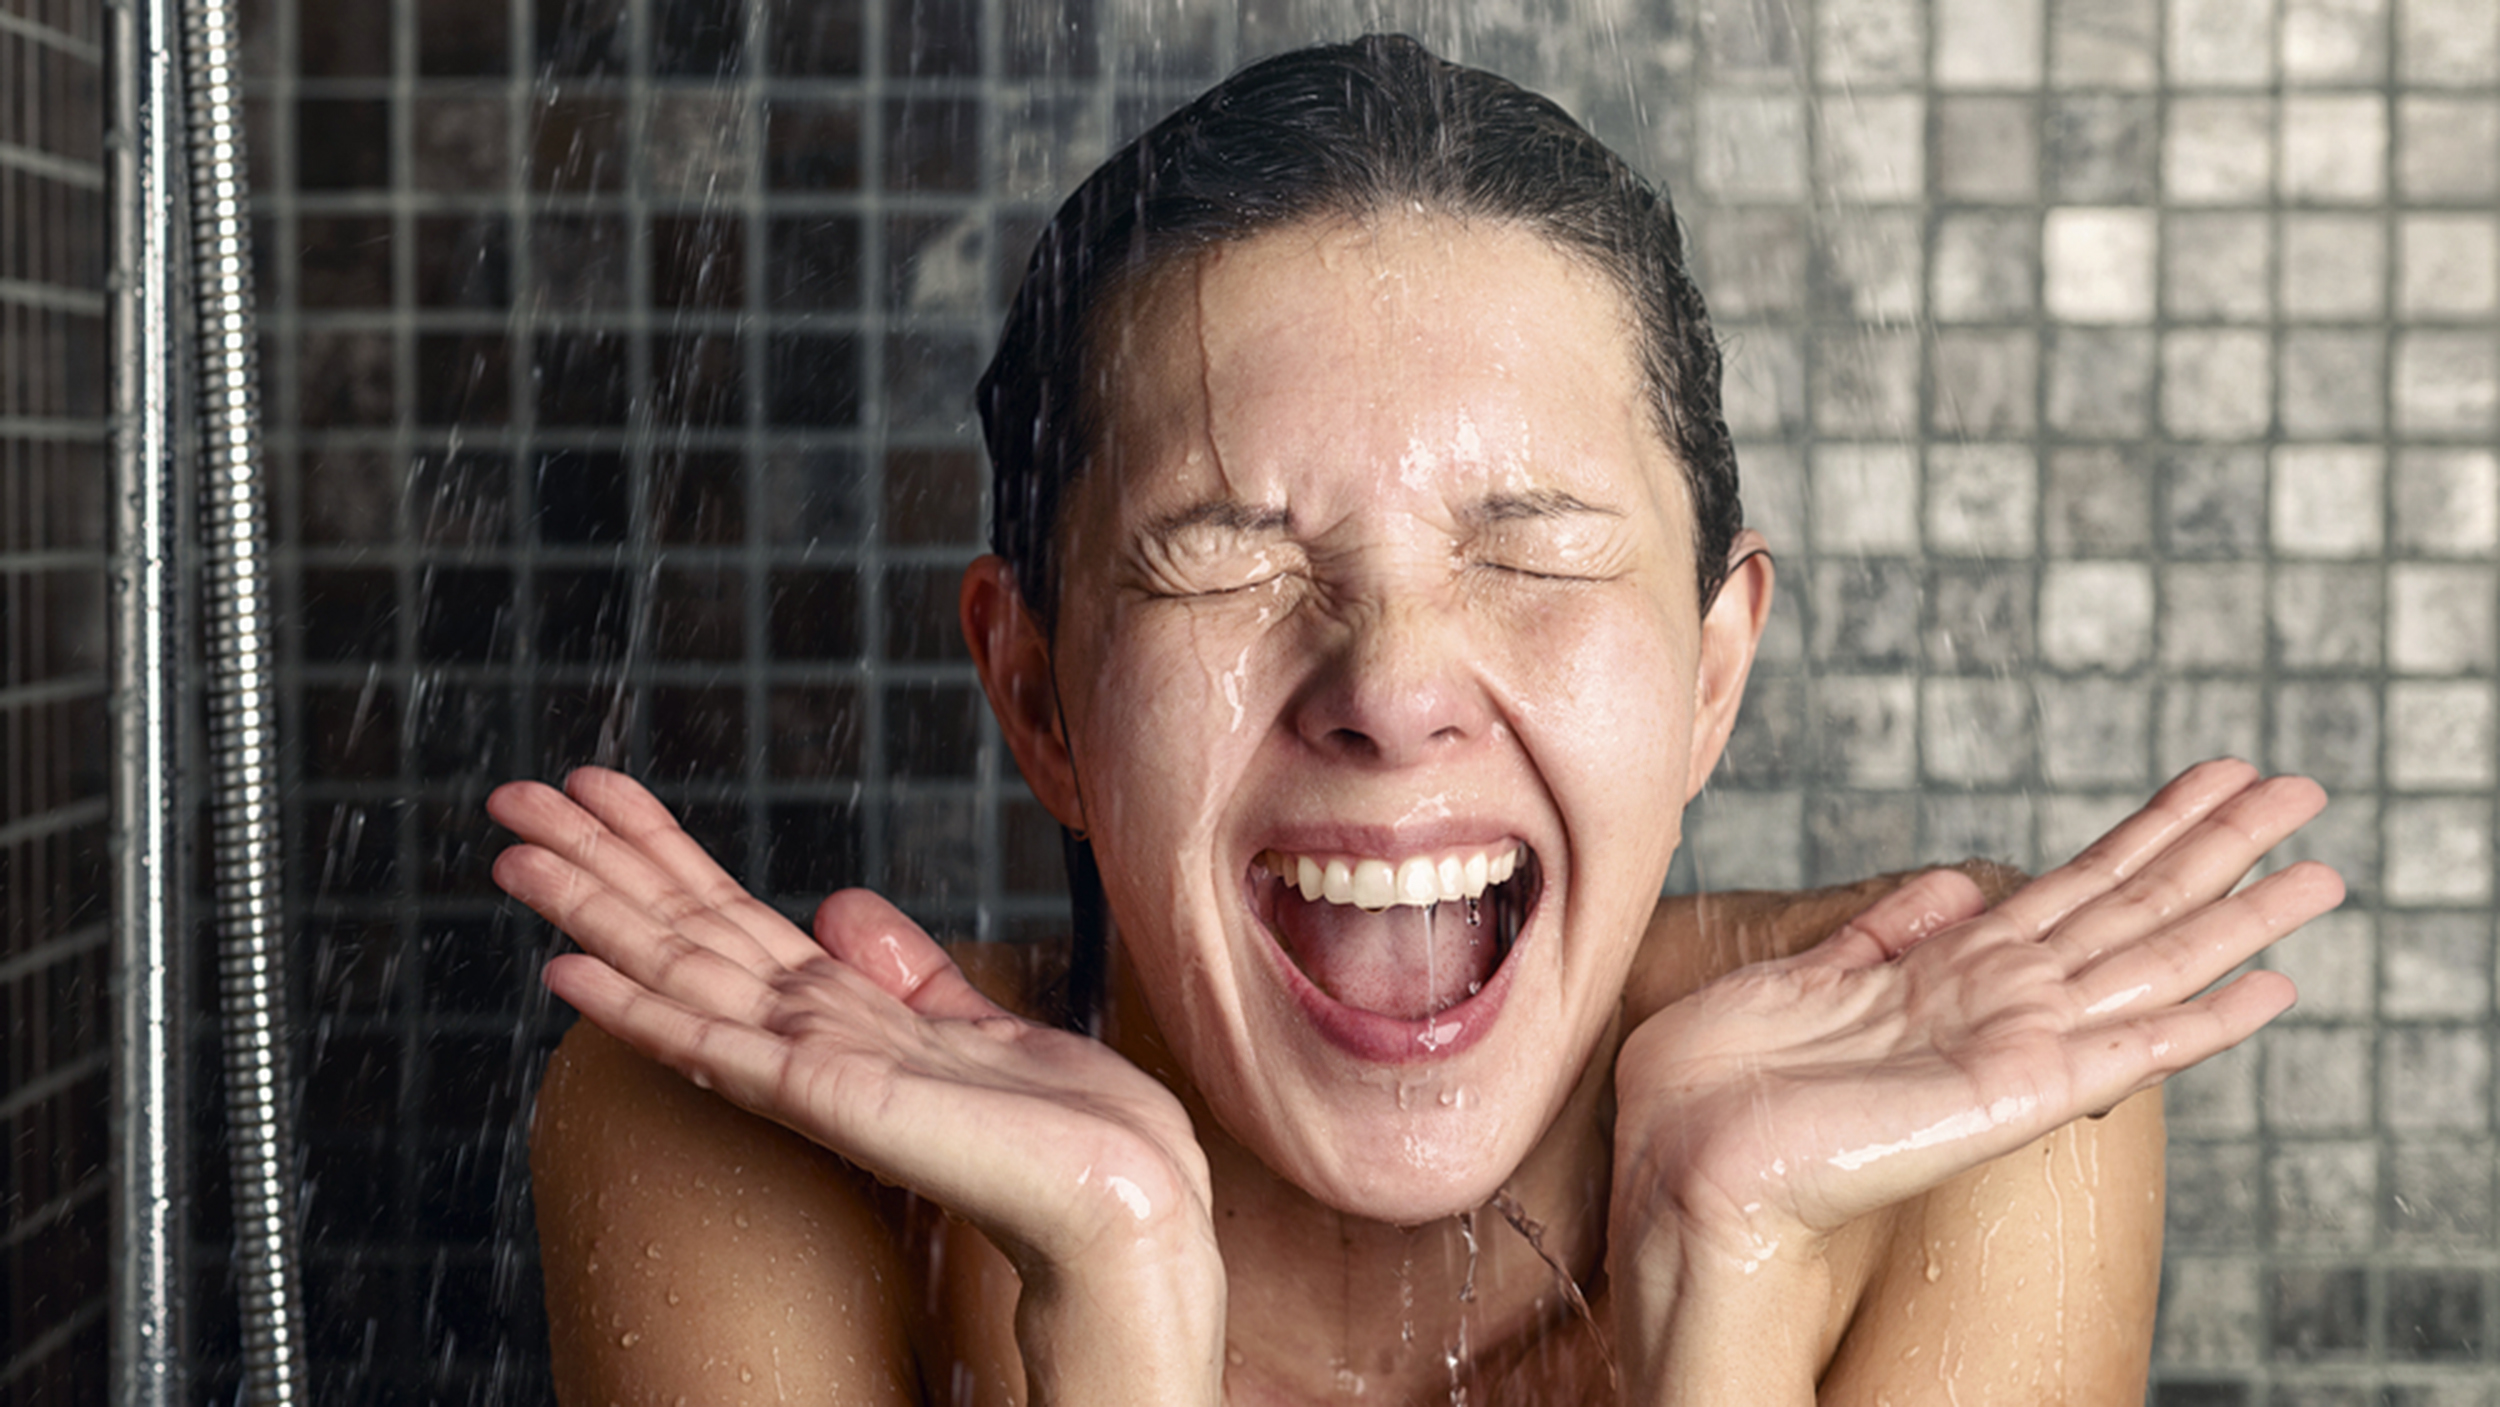 shower1 Heres How To Keep Cool In Bed During The Heatwave